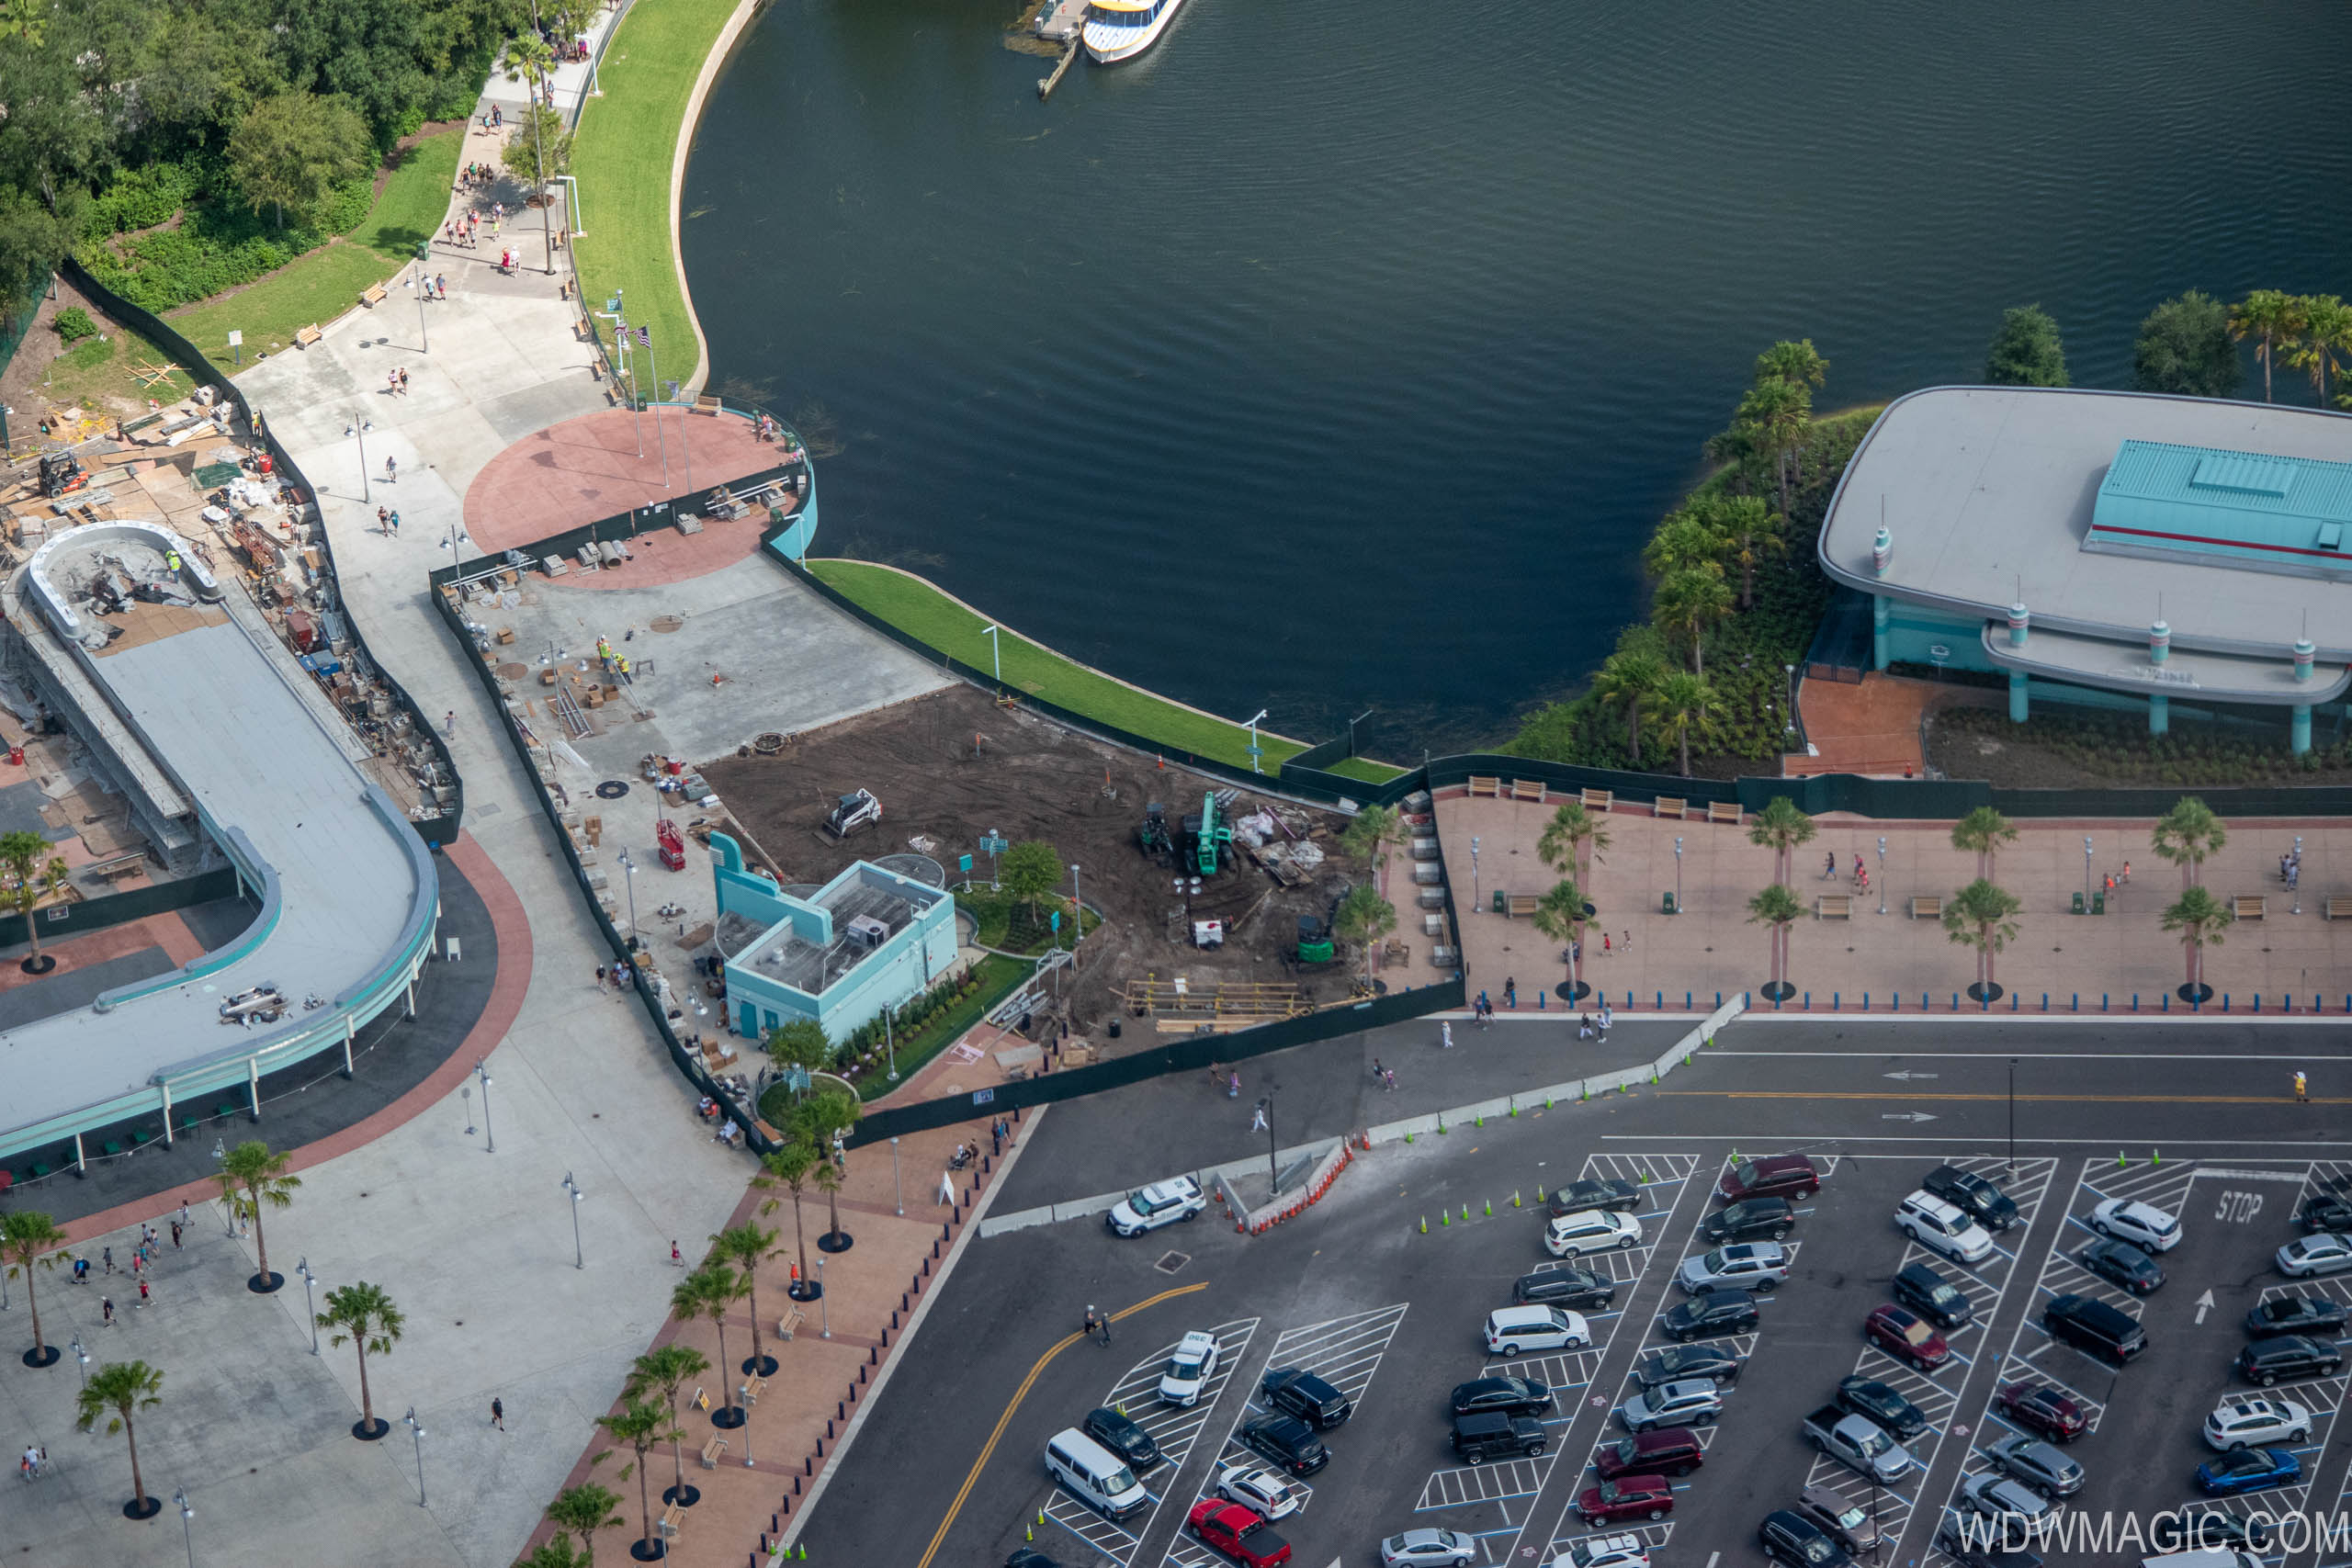 Disney's Hollywood Studios main entrance construction from the air - July 2019